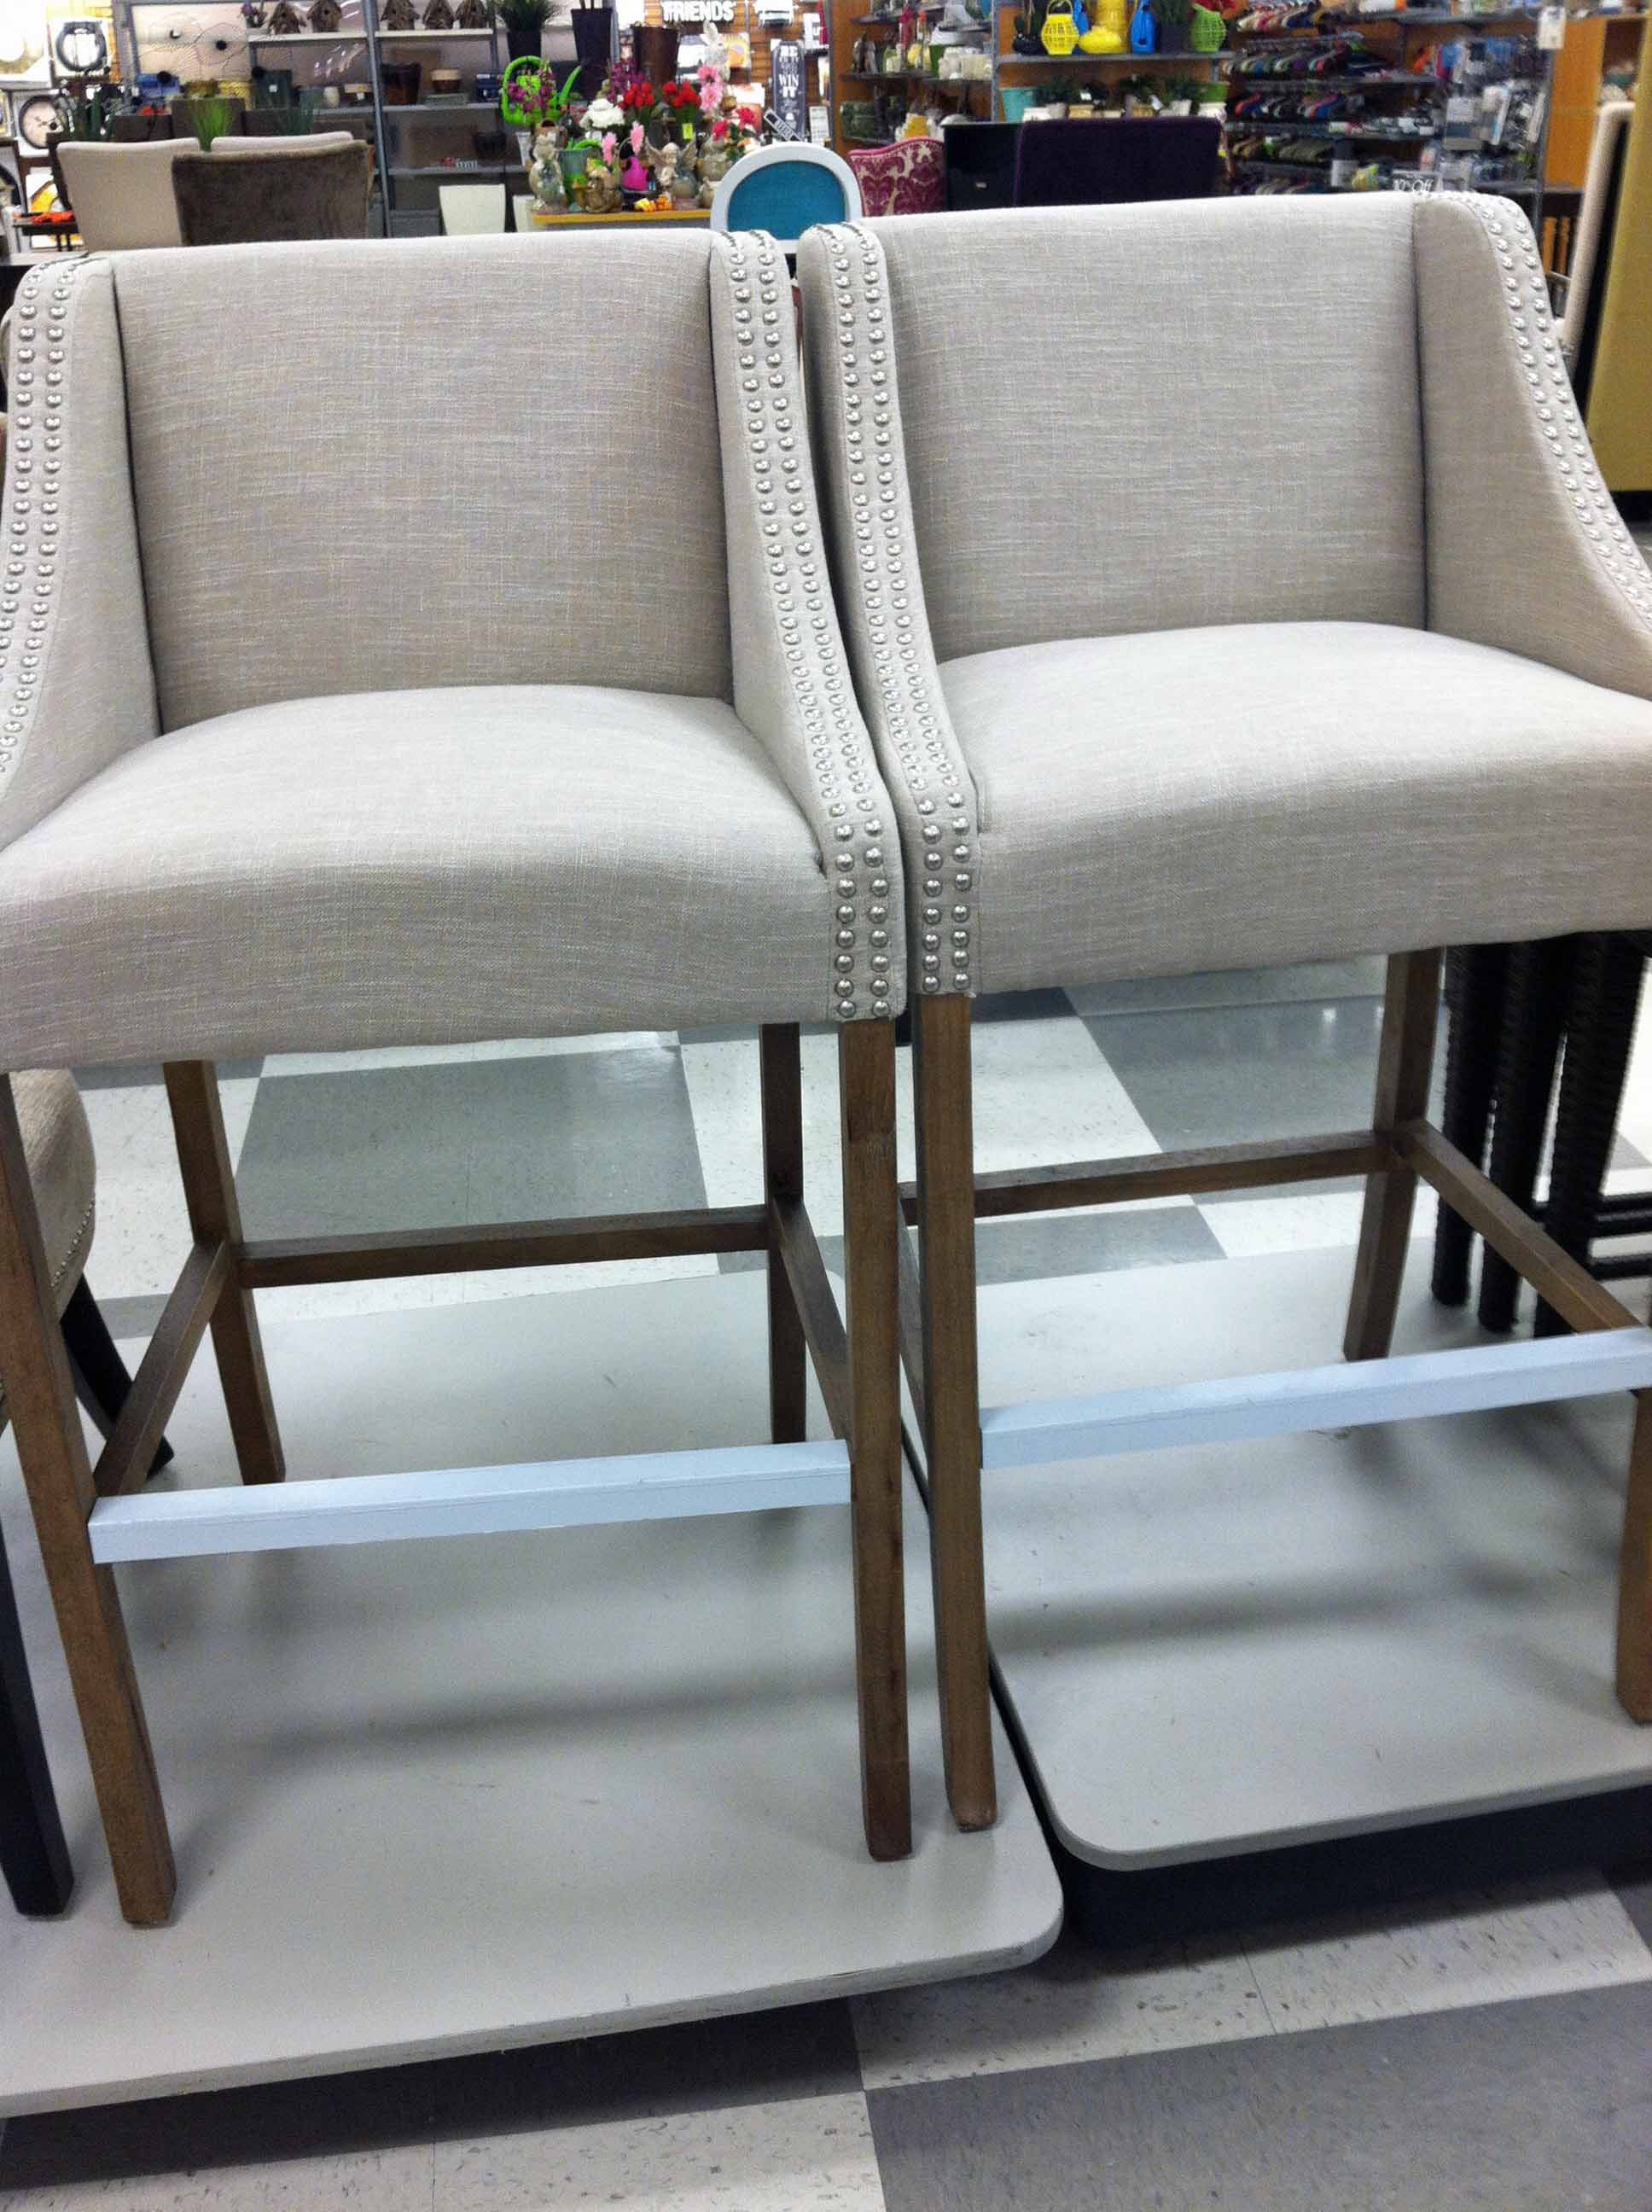 dining chairs at marshalls bedroom reading chair tj maxx furniture best selection to your home interior